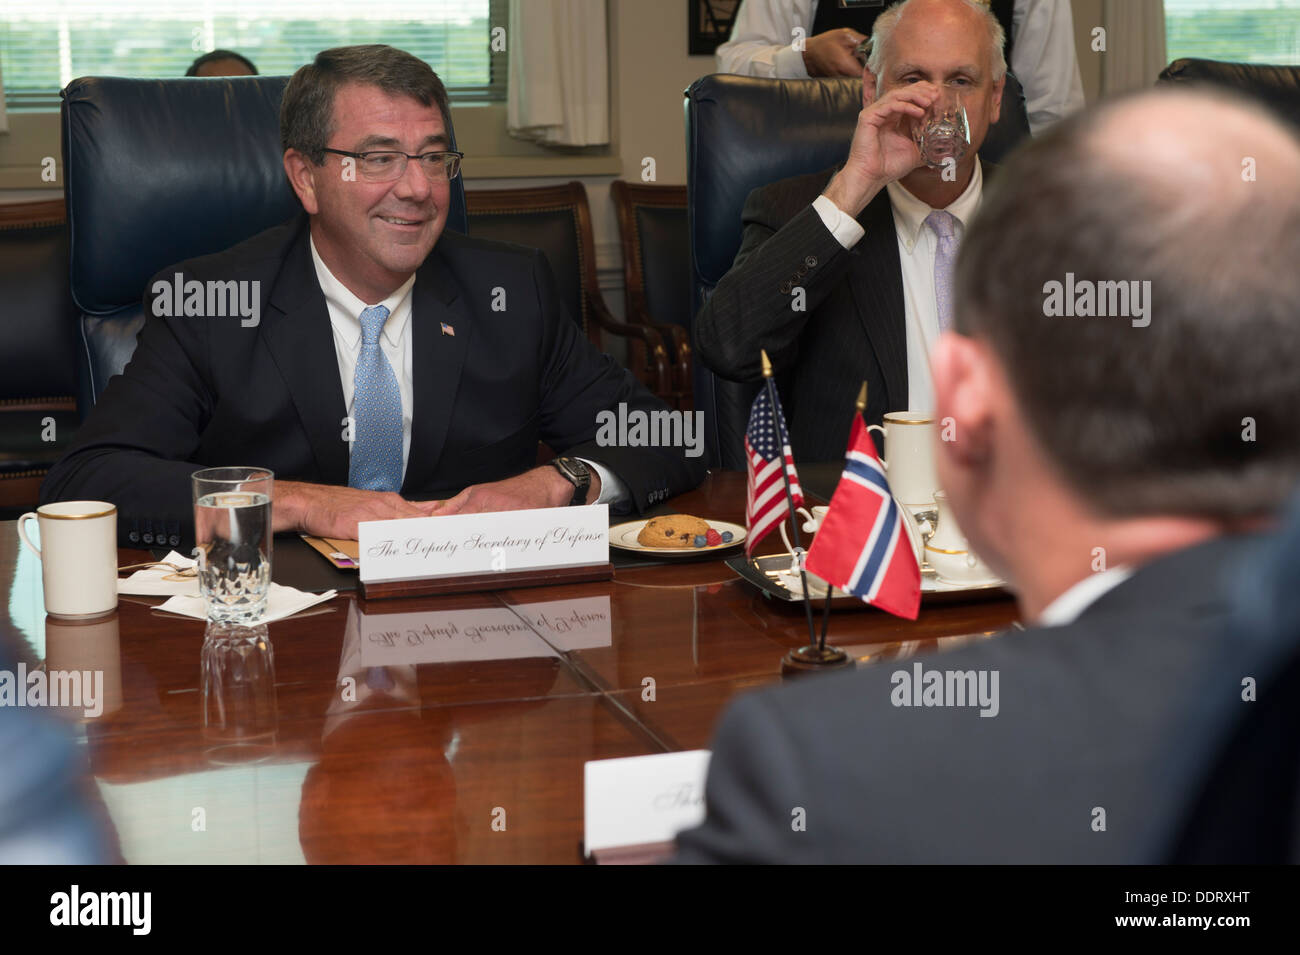 Deputy Secretary of Defense Ash Carter, left, meets with Thorshaug, foreground right, the state secretary of the Norweigan Ministry of Defense, at the Pentagon in Arlington, Va., Sept. 3, 2013. - Stock Image